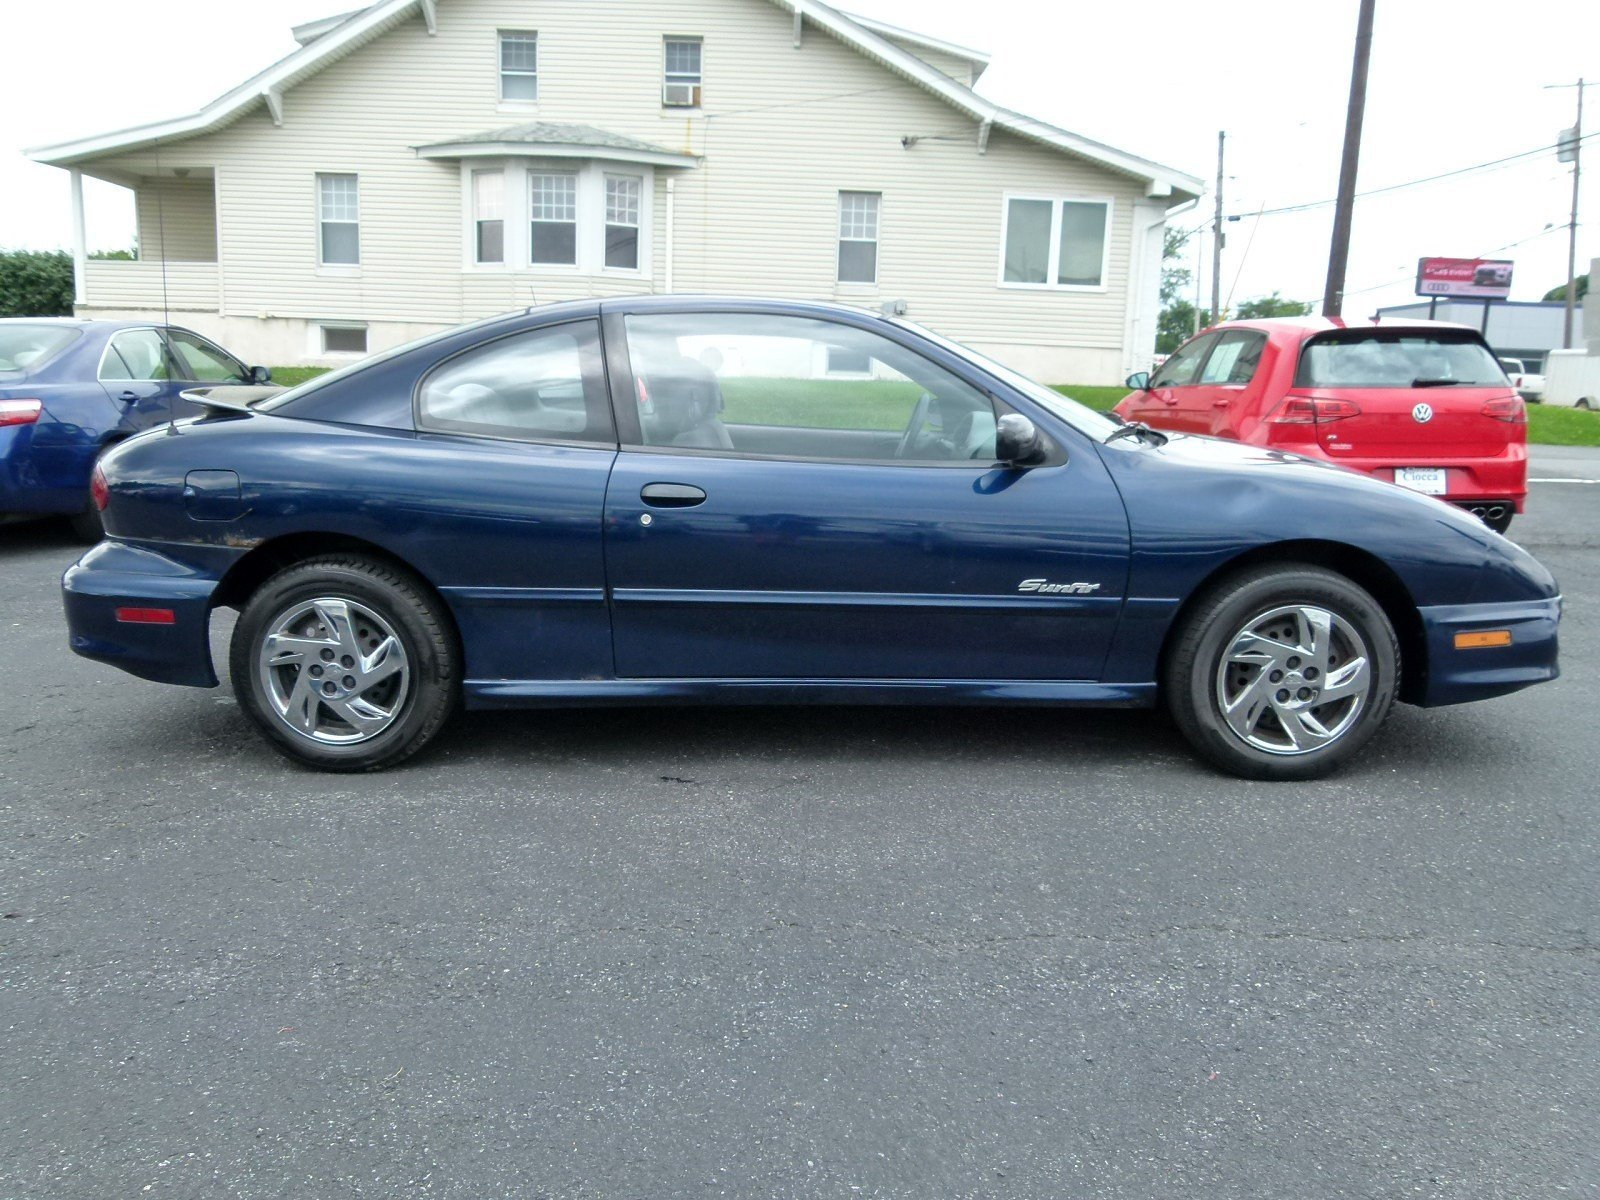 hight resolution of used 2002 pontiac sunfire coupe for sale in allentown pa near emmaus macungie breinigsville pa vin 1g2jb124127477748